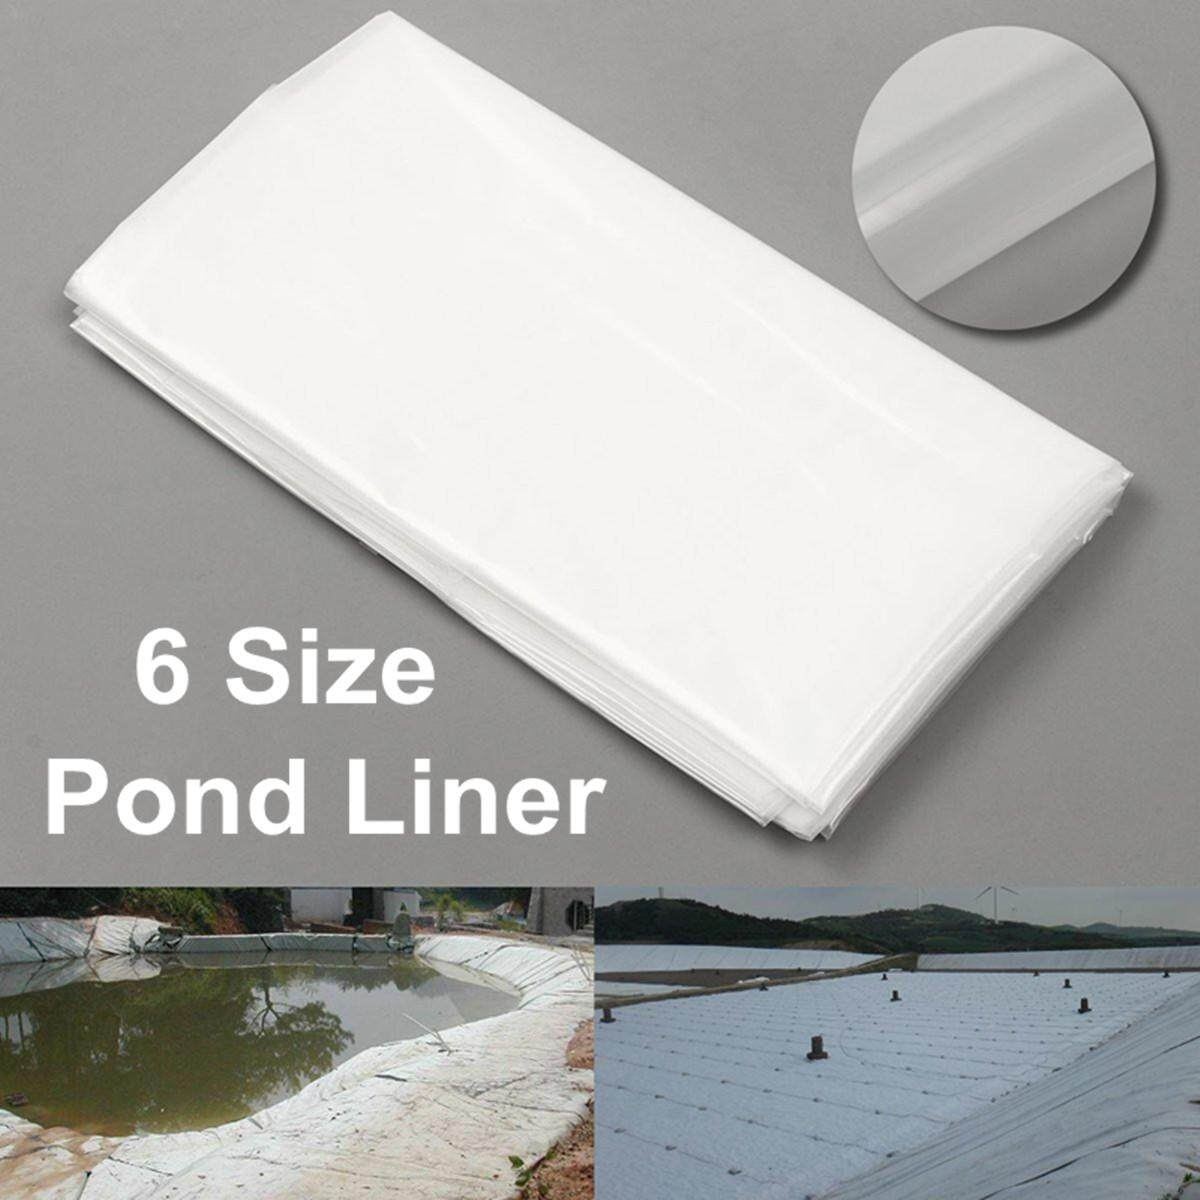 2m/6.5ft White Fish Pond Liner Garden Pool HDPE Membrane Reinforced Landscaping # 2*7m